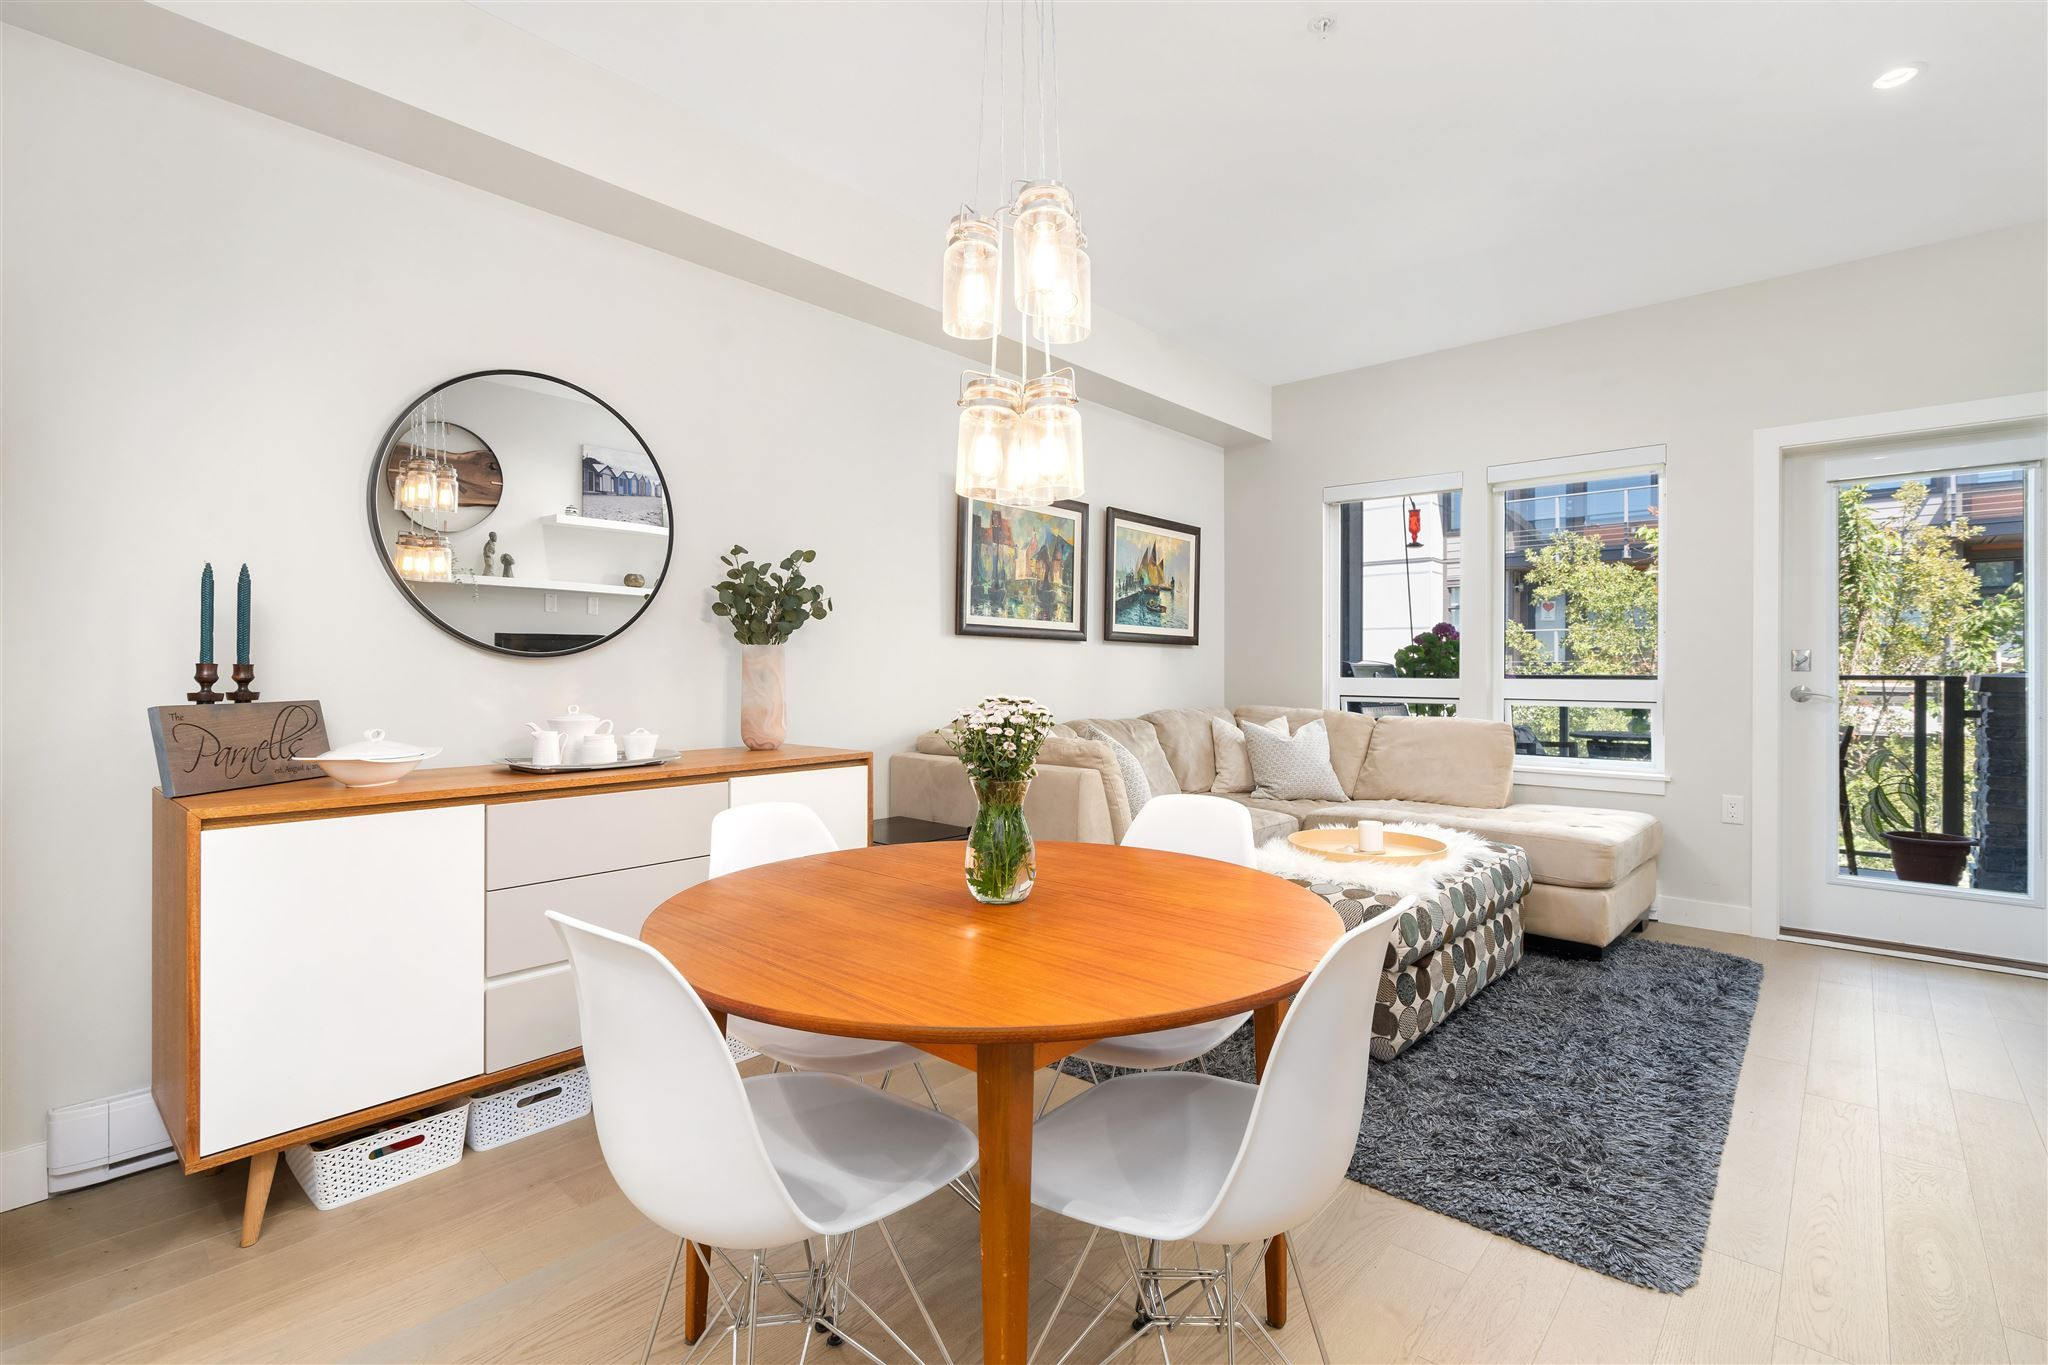 """Main Photo: 113 1708 55A Street in Delta: Cliff Drive Townhouse for sale in """"City Homes"""" (Tsawwassen)  : MLS®# R2601281"""